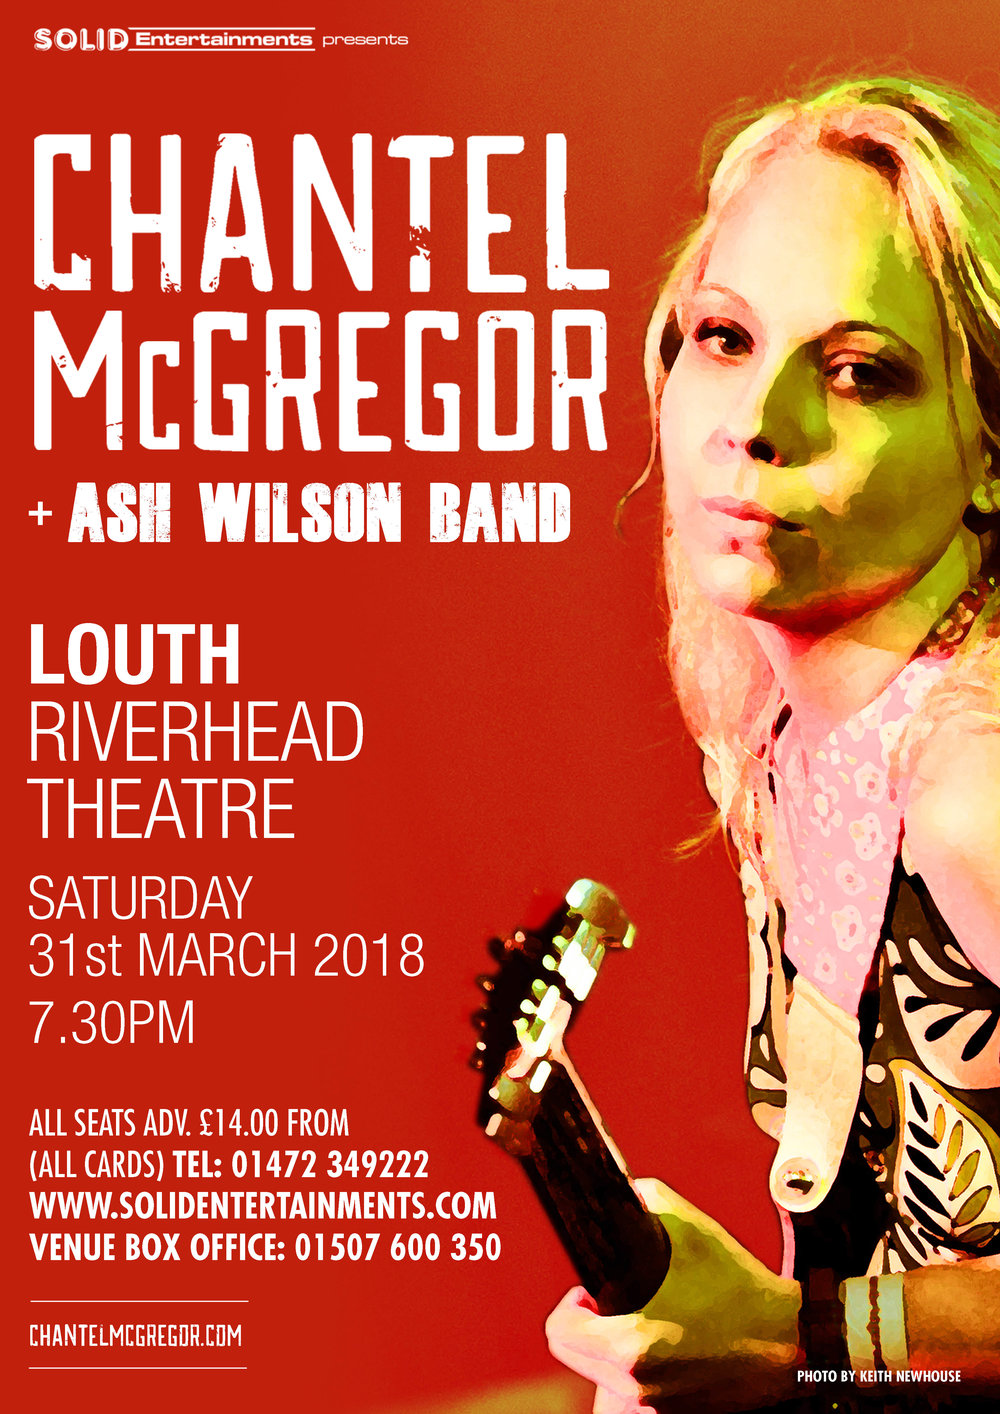 CHANTEL LOUTH 31.03.18.jpg